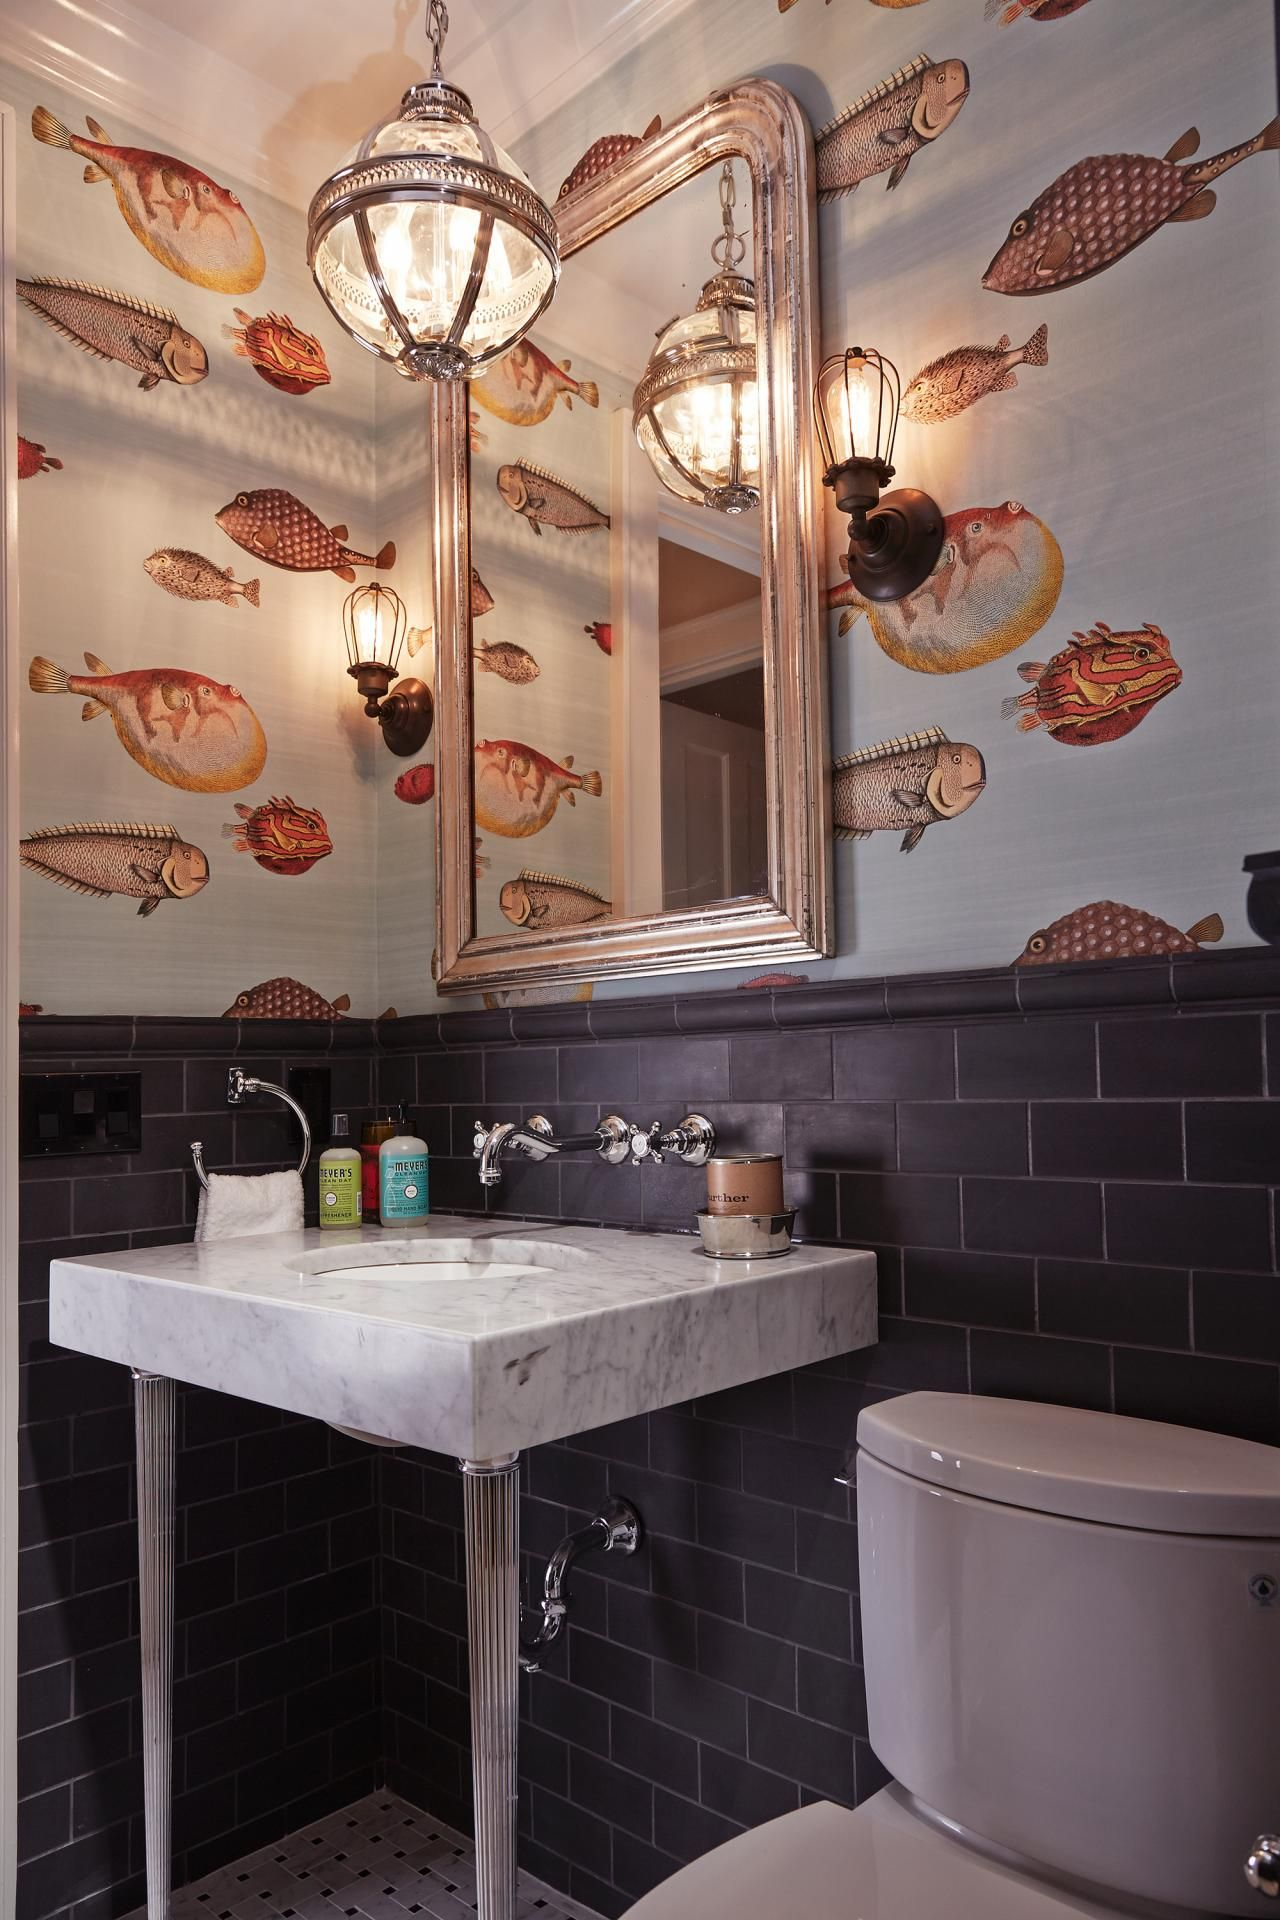 This Small Guest Bathroom Received A Bold Design Choice Fish Patterned Wallpaper The Whimsical Paired With Black Matte Finished Tiled Surfaces